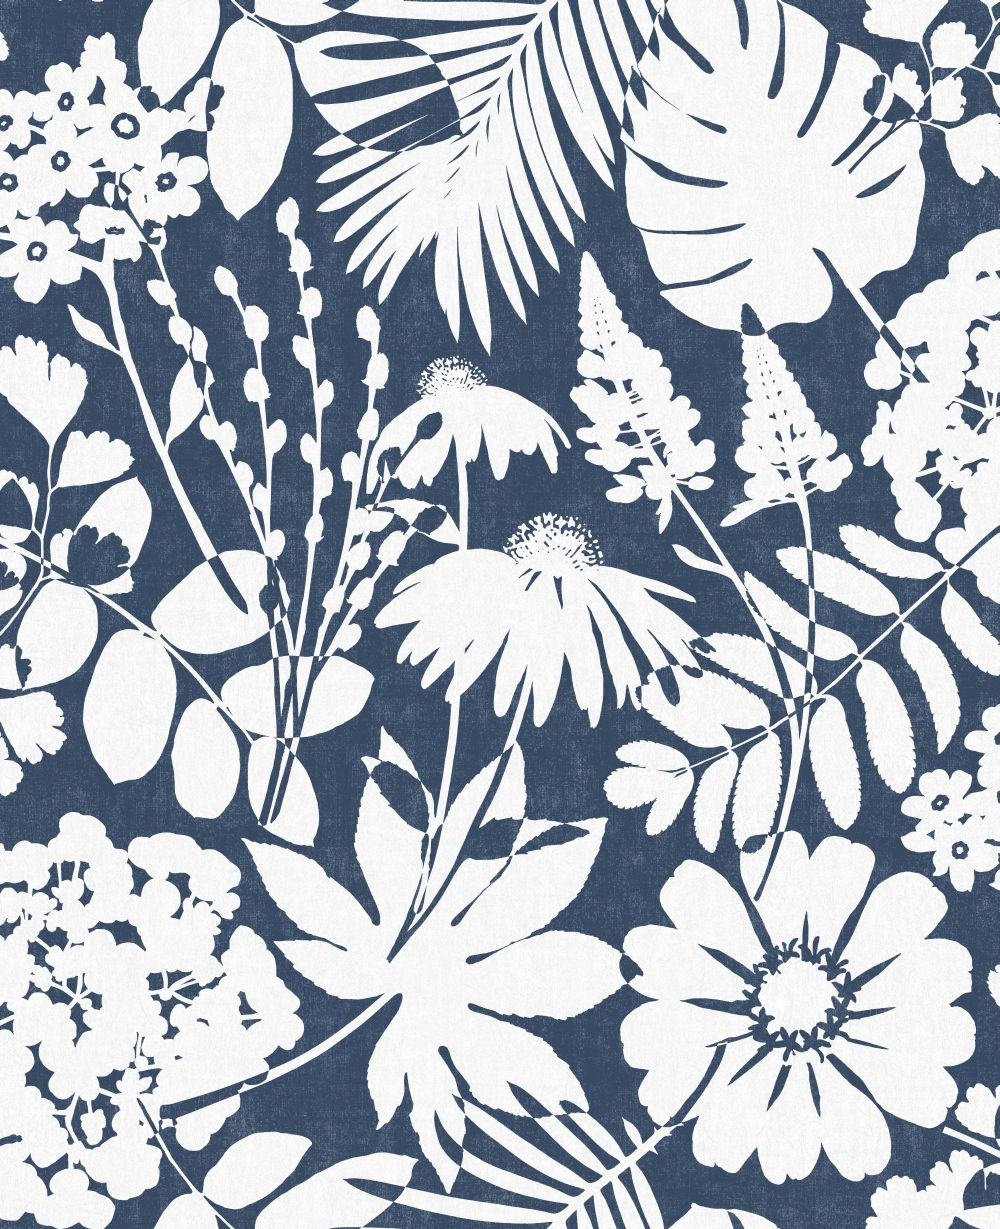 Albany Bold Floral Navy Blue Wallpaper - Product code: CB42108